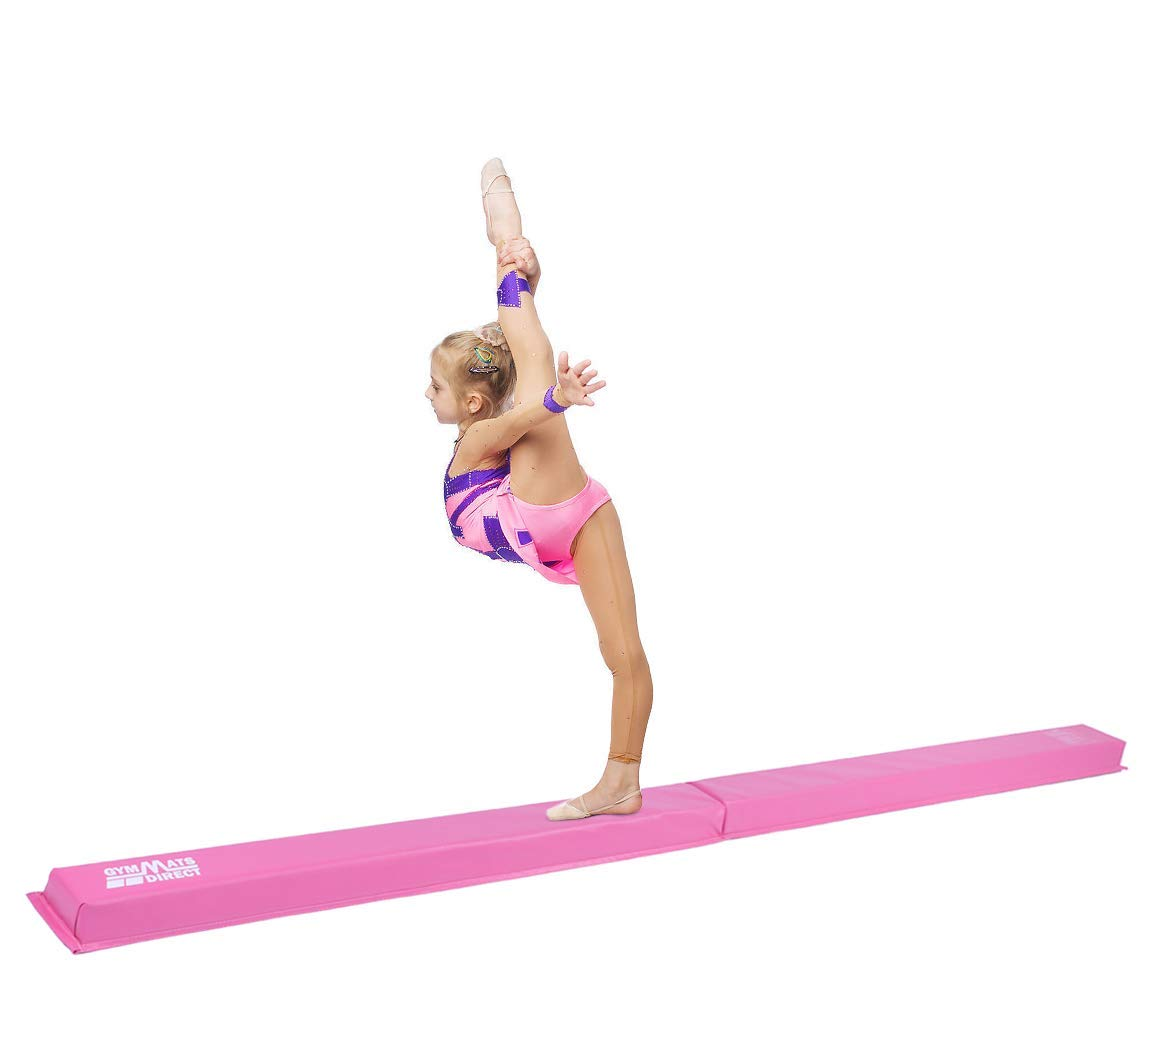 Gymnastics Beam for Kids, 9' Folding Floor Balance Beam for Home Practice, Pink